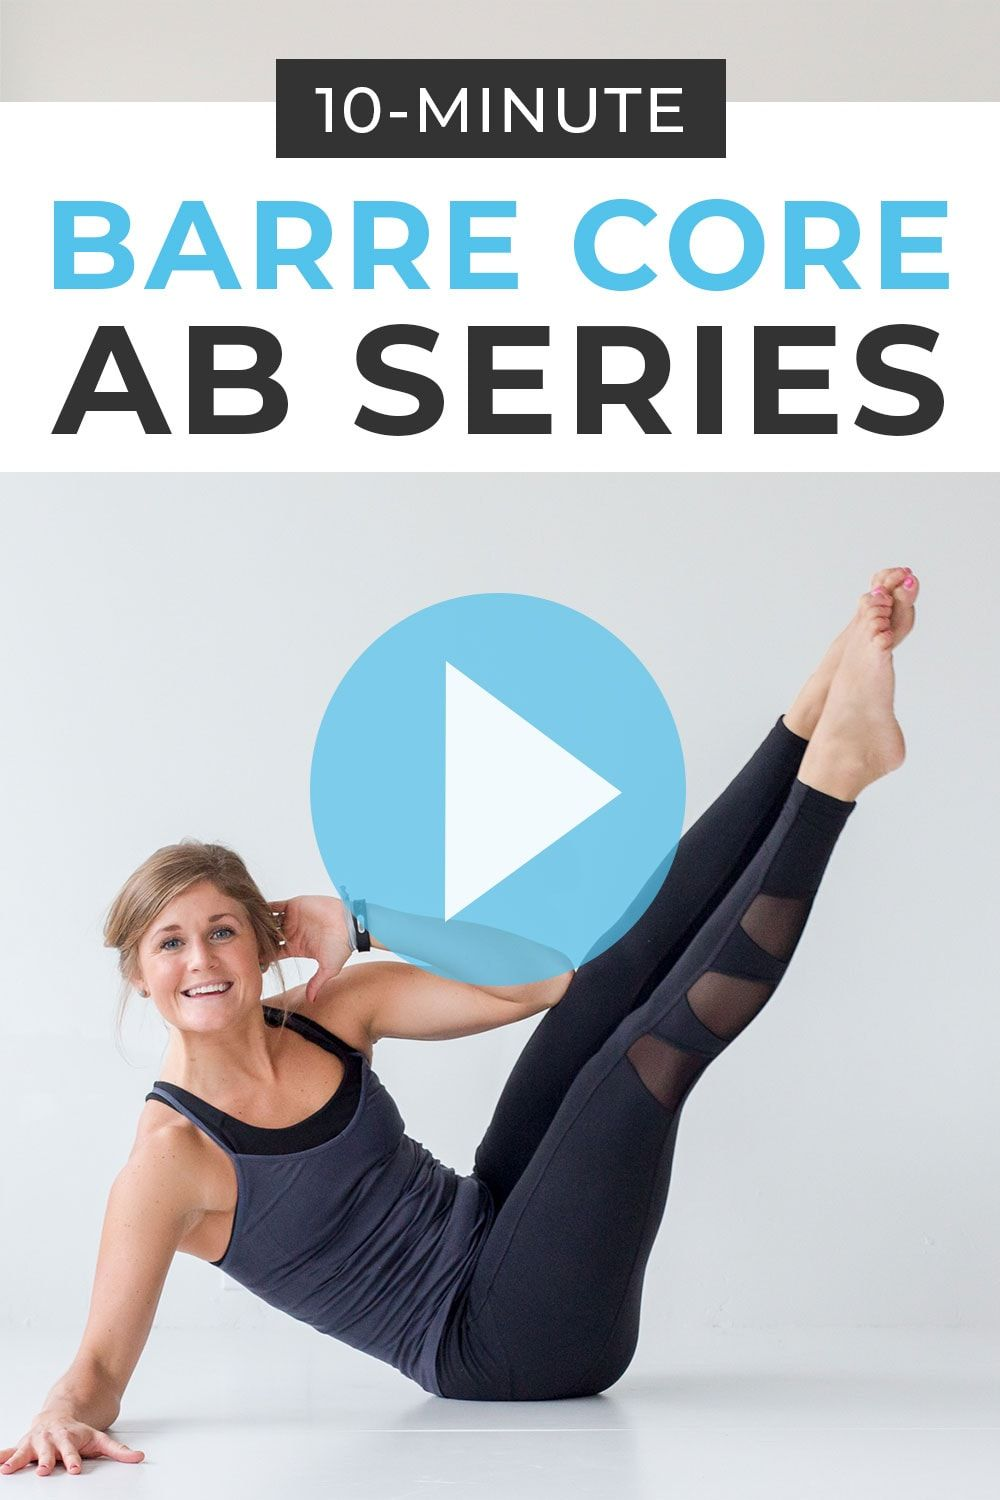 Barre Abs Series